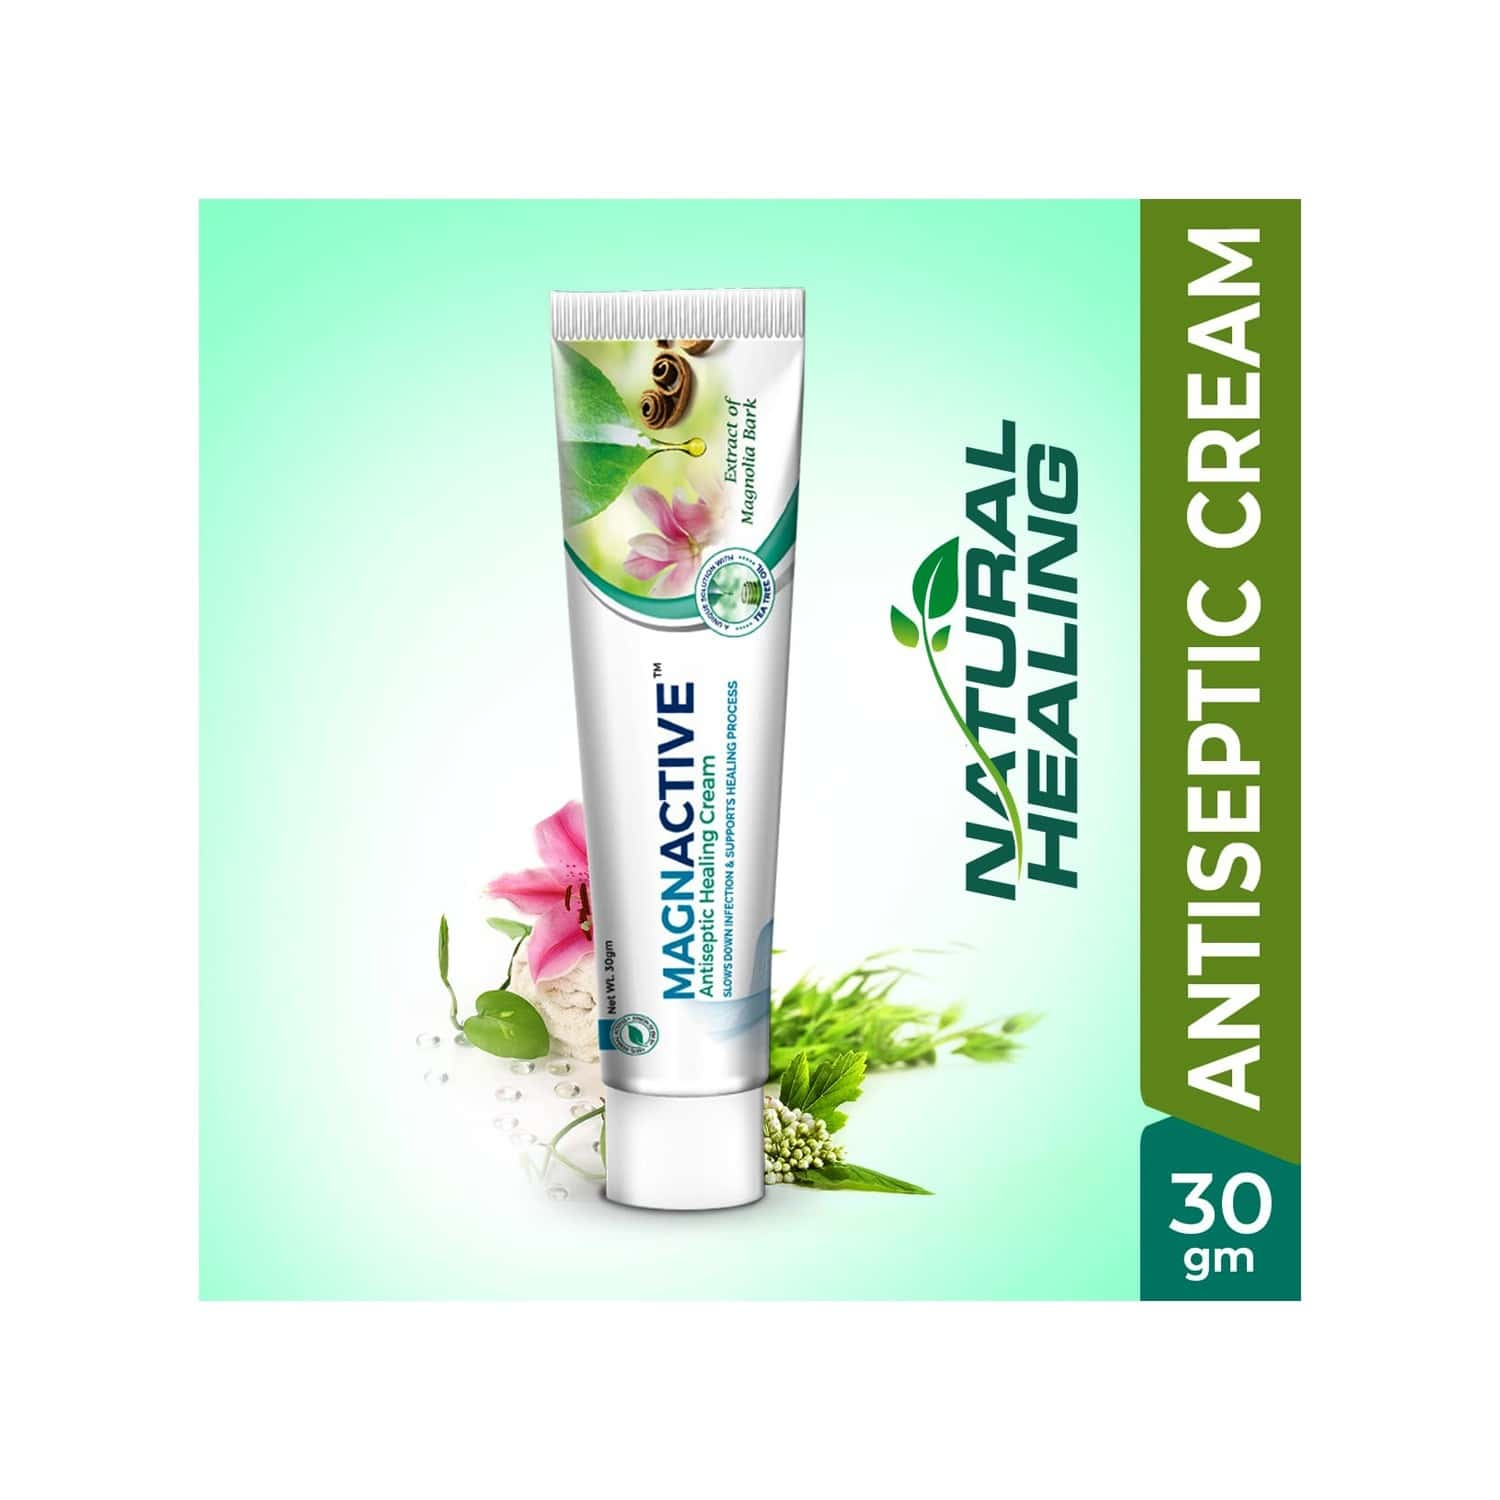 Green Cure Magnactive Herbal Antiseptic Cream For Cuts, Scratches, Minor Burns, Wounds And Chapped Skin With Magnolia & Tea Tree Leaf Oil - 30gm